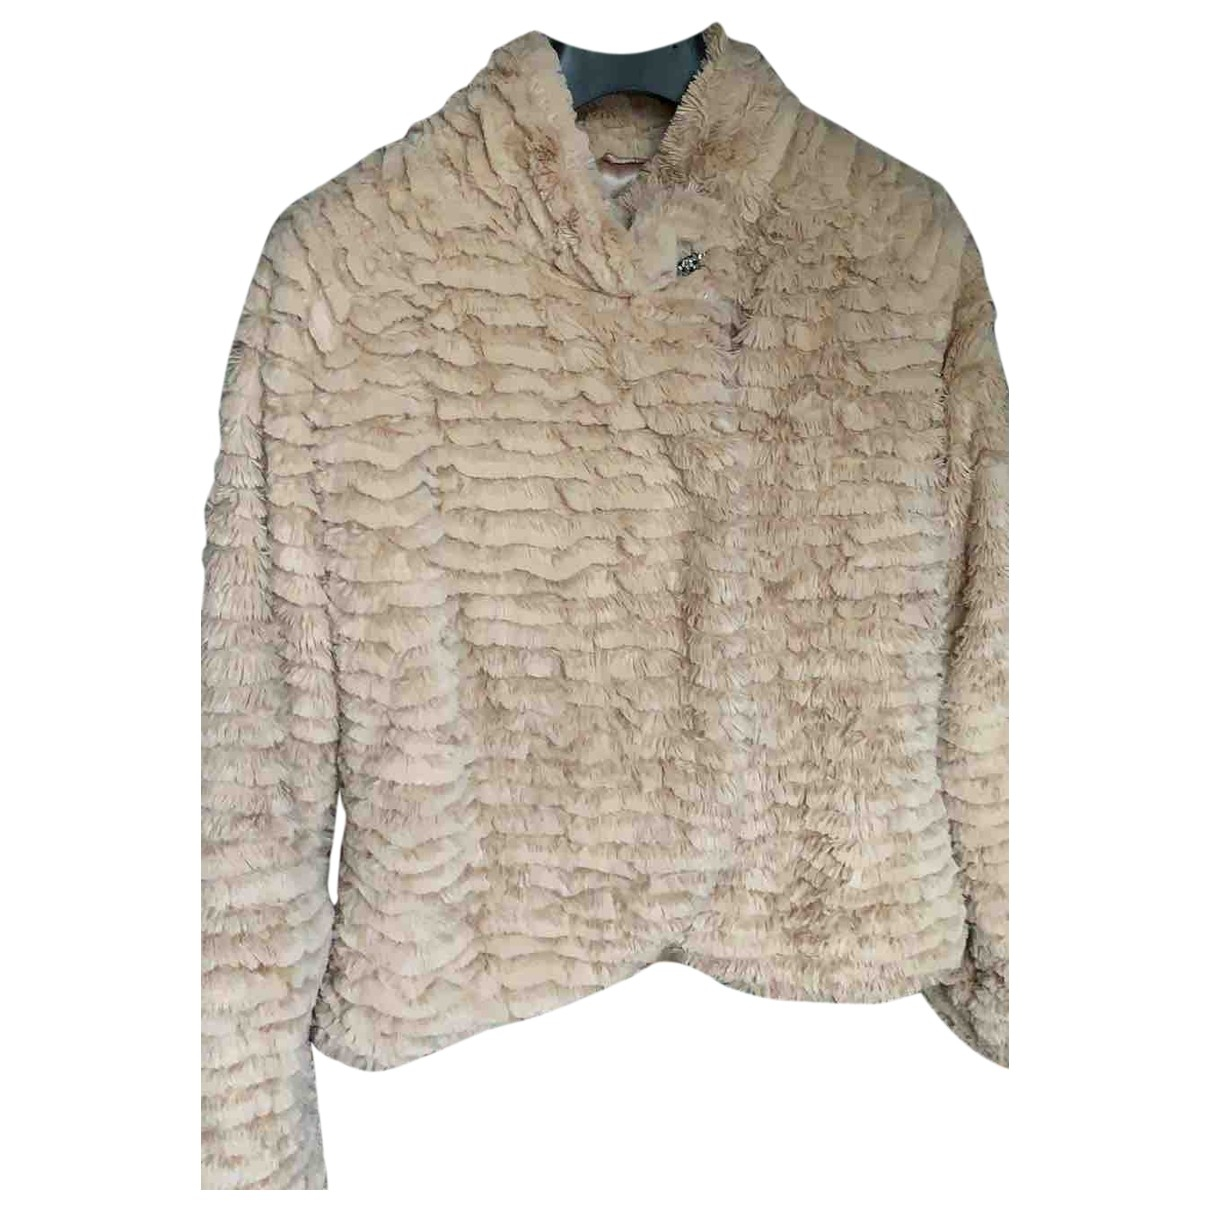 Liu.jo \N Beige jacket for Women S International